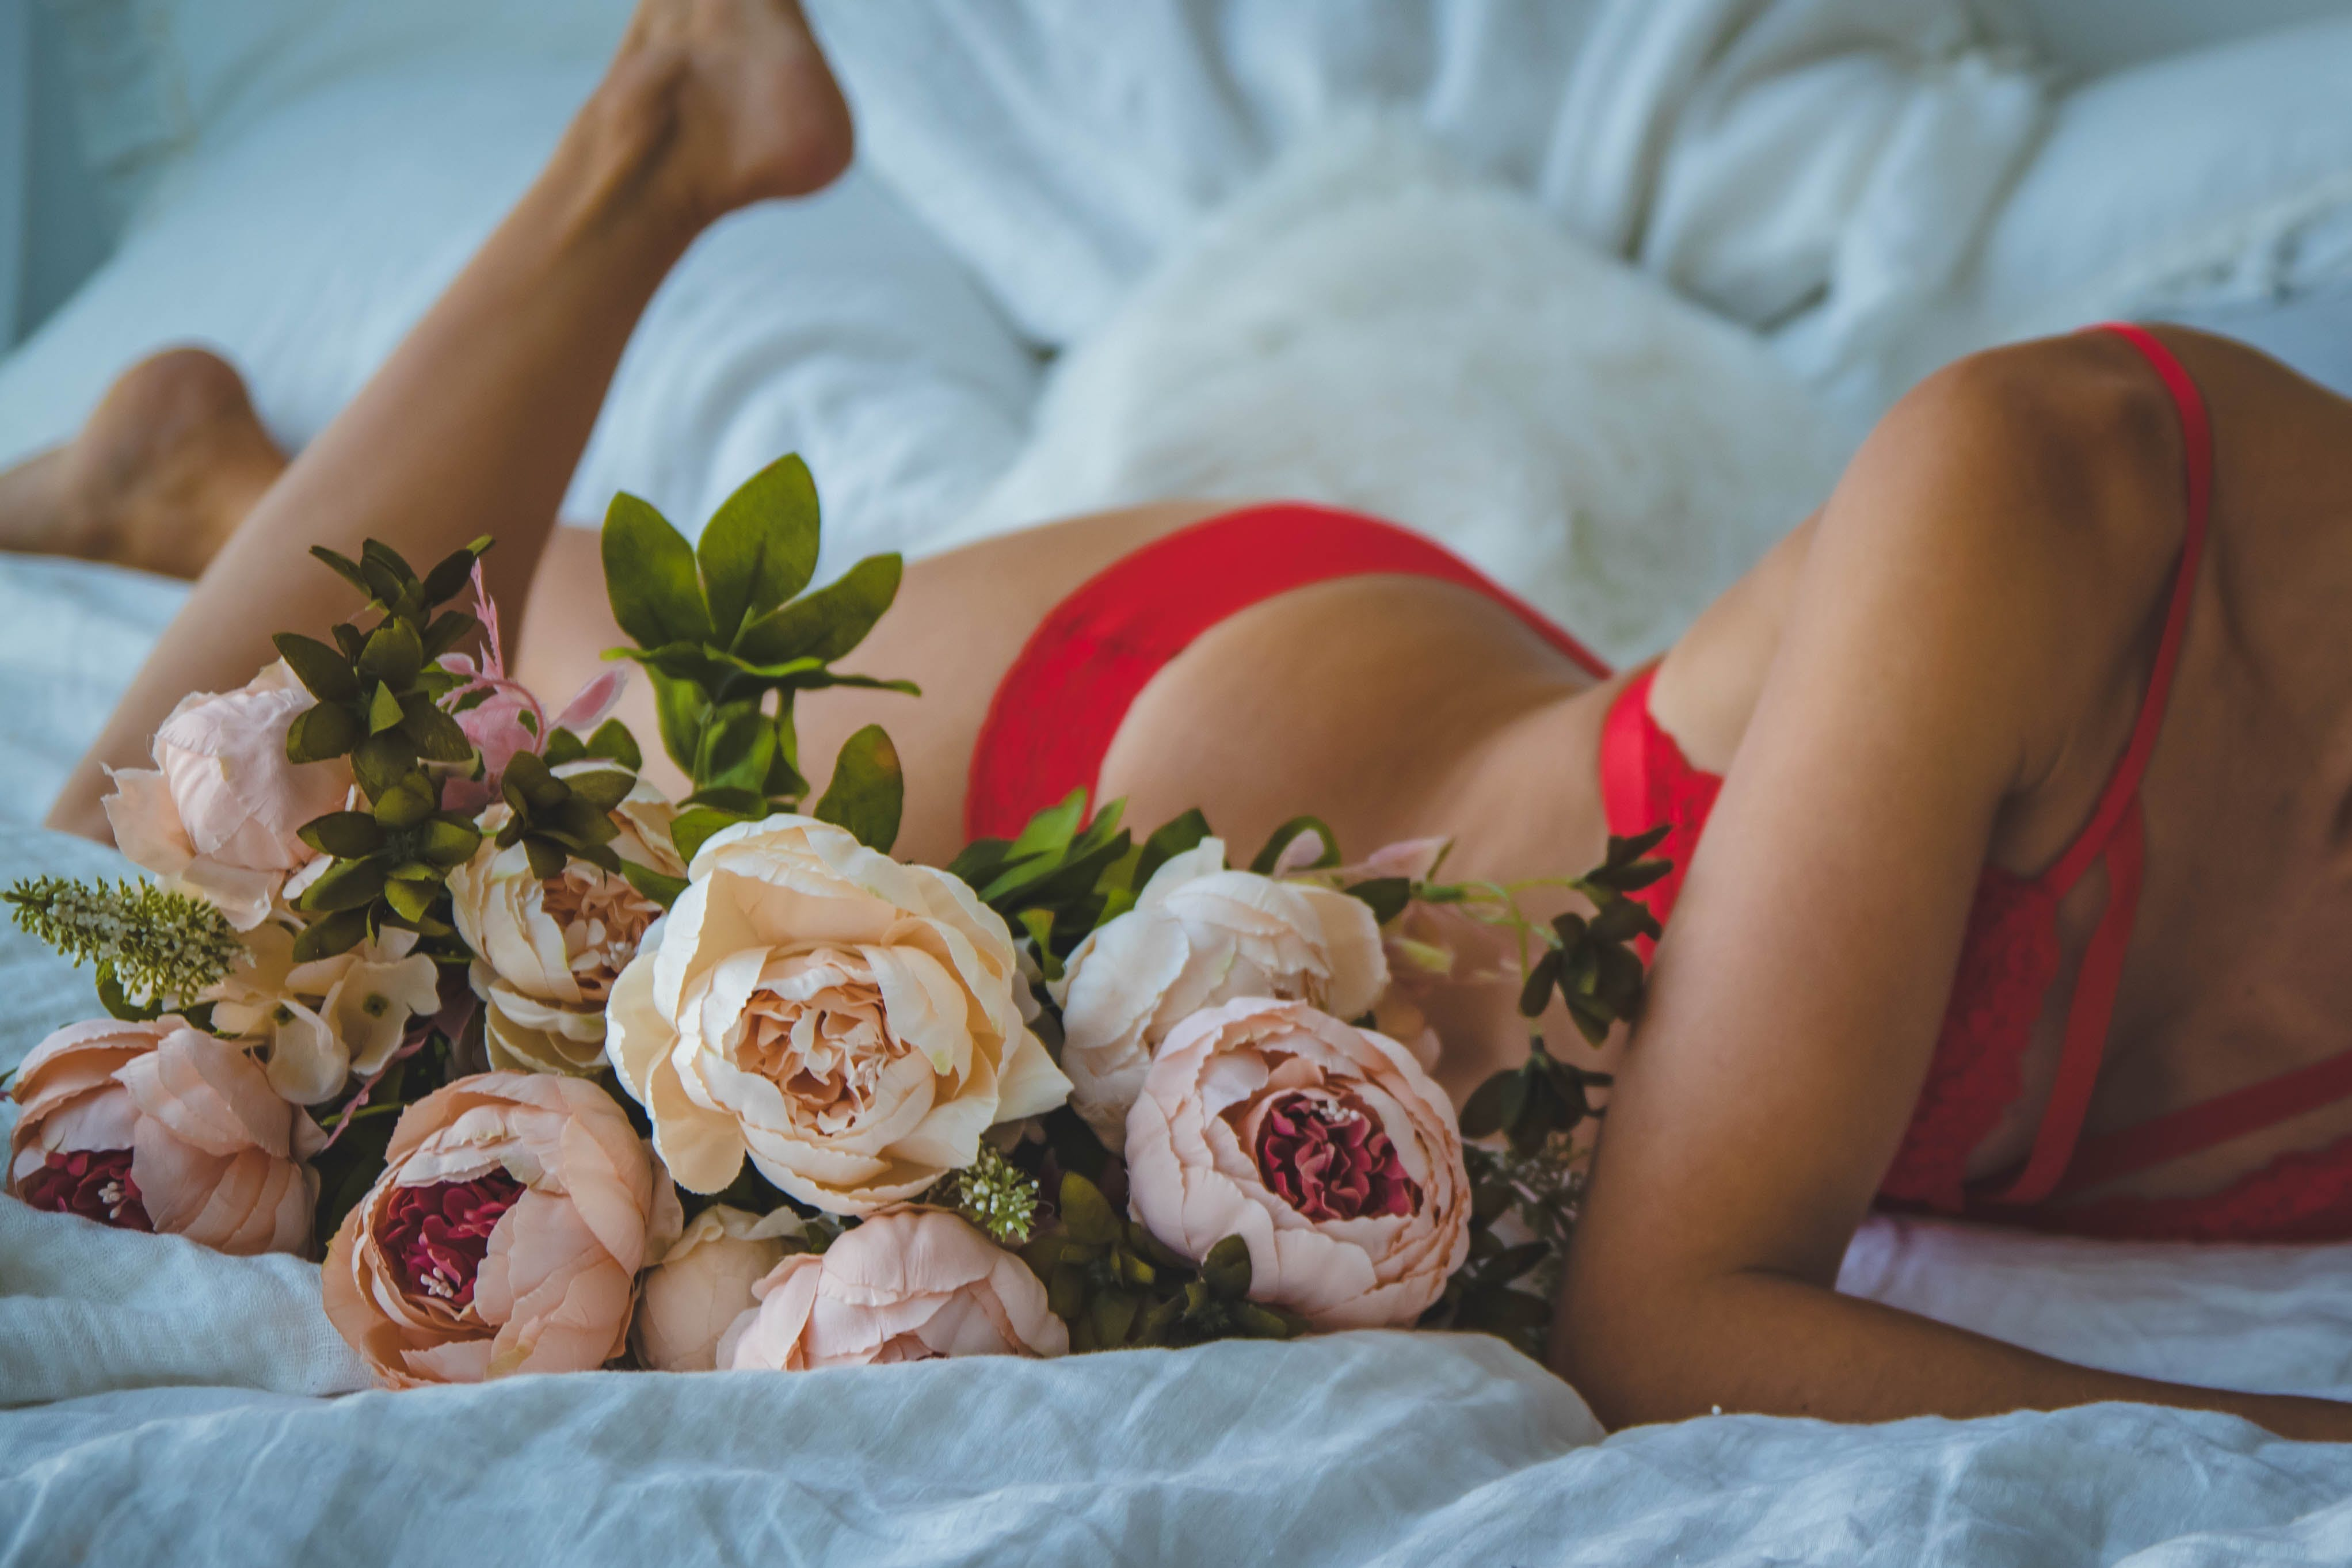 Woman in Red Two-piece Bikini Lying on Bed Beside of White and Pink Roses